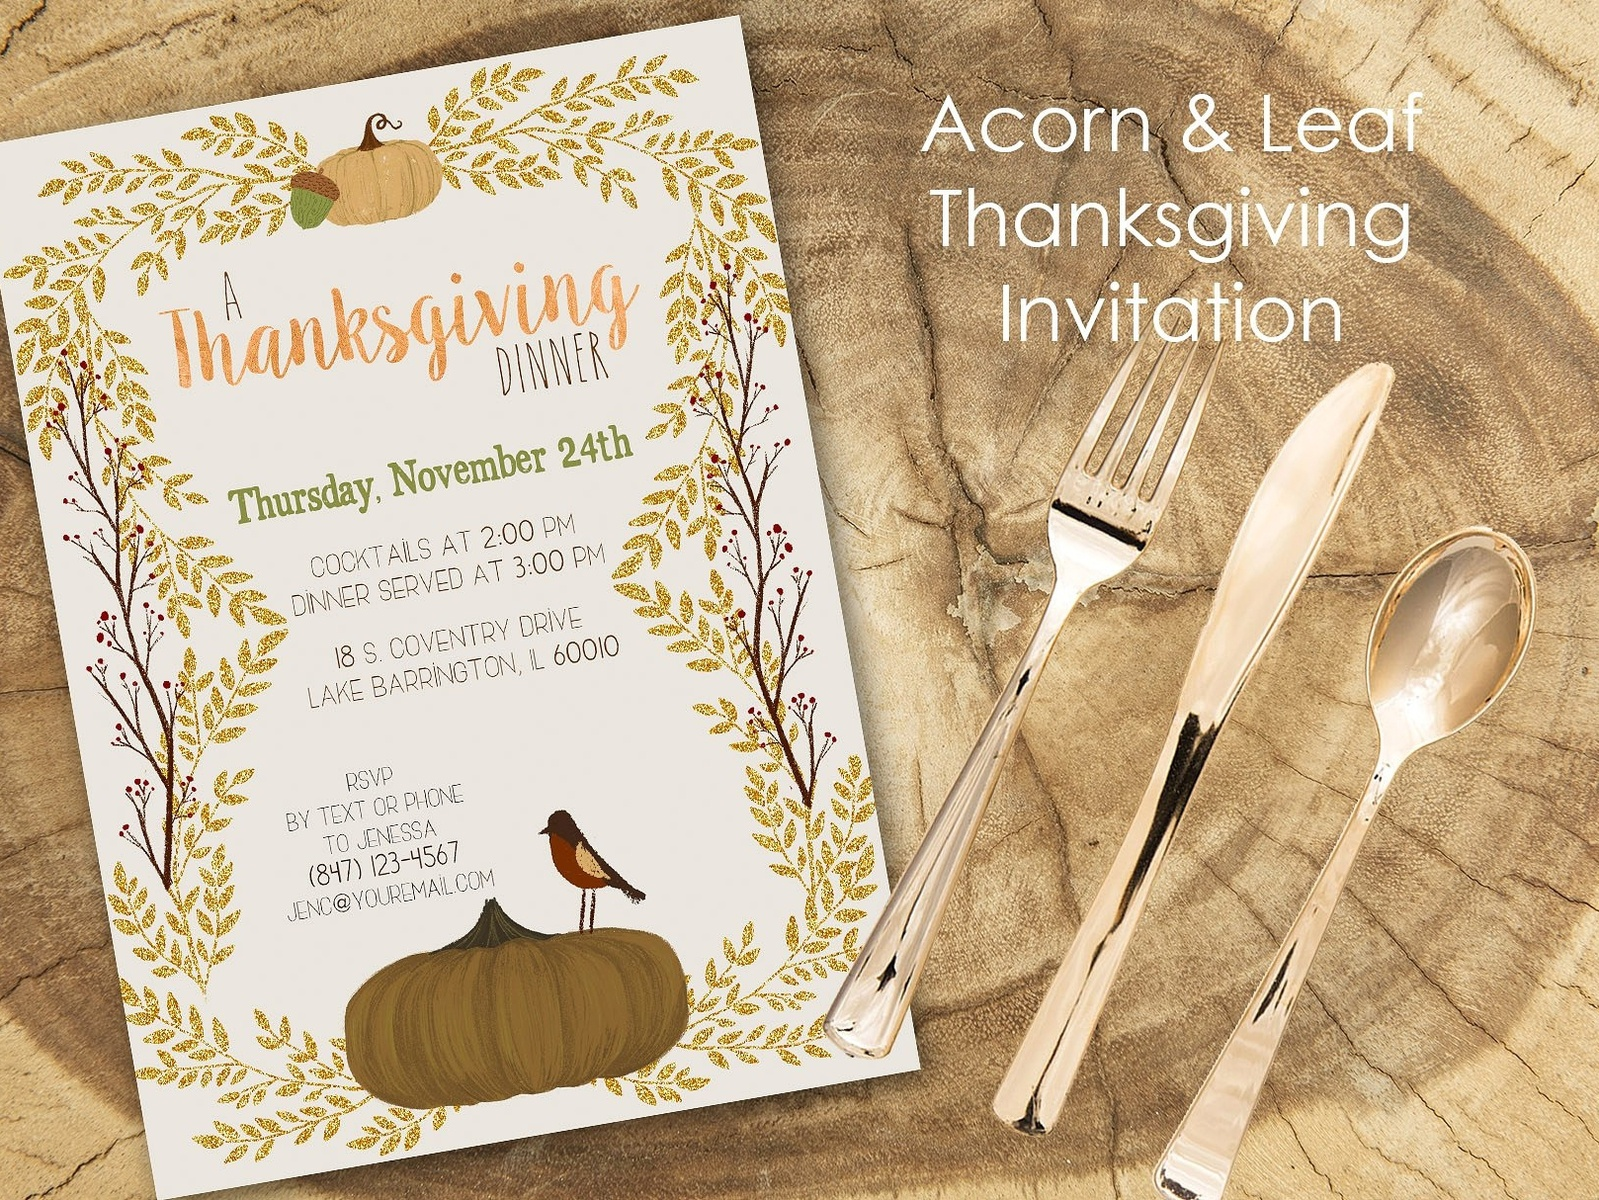 Acorn Leaf Thanksgiving Invitation Thanksgiving Logo Design Floral Flower Romance Hand Crafted Cute Craft Simple Invitation